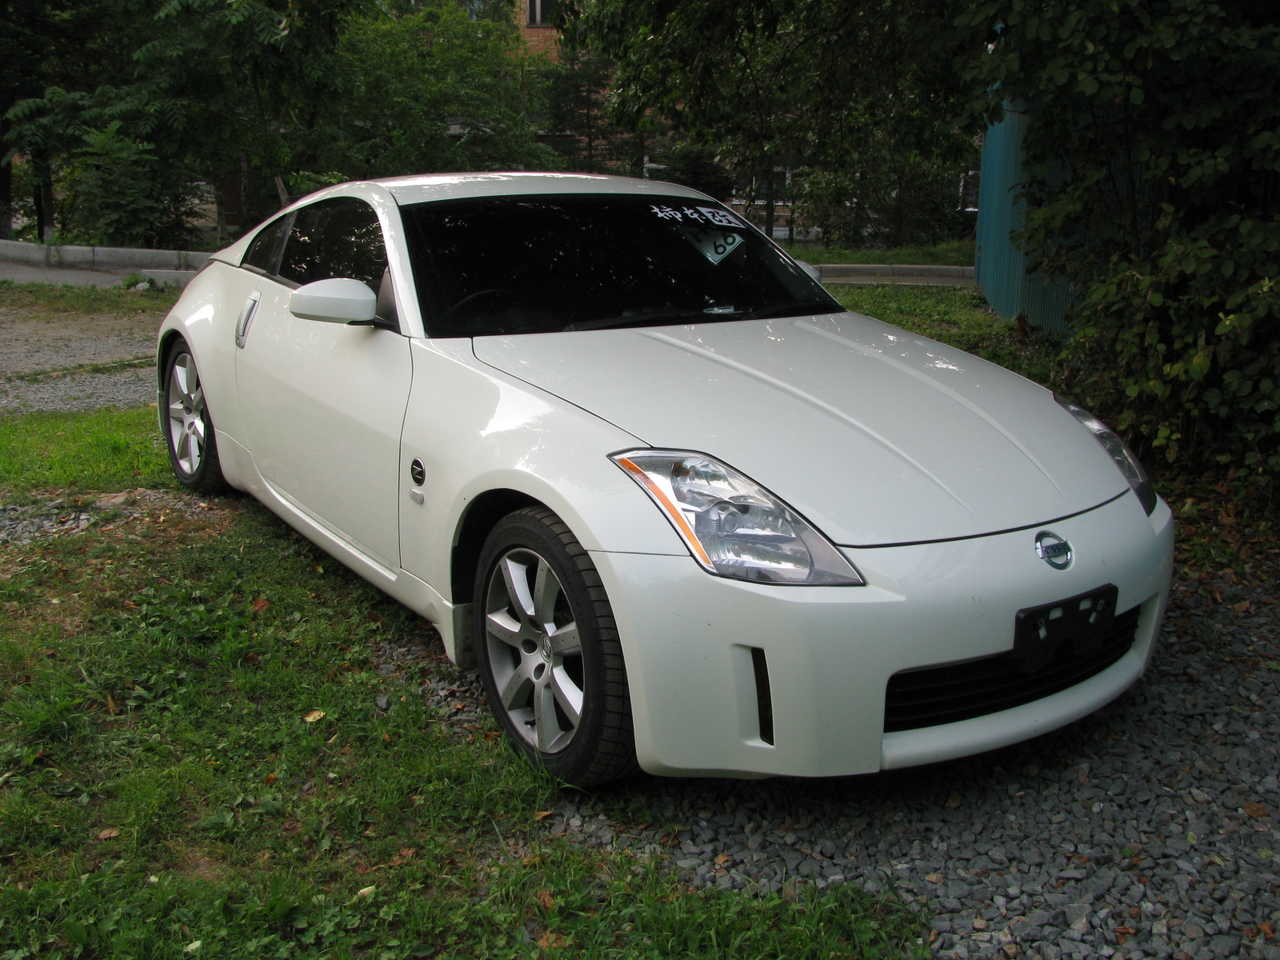 2003 nissan fairlady z for sale 3 5 gasoline fr or rr. Black Bedroom Furniture Sets. Home Design Ideas